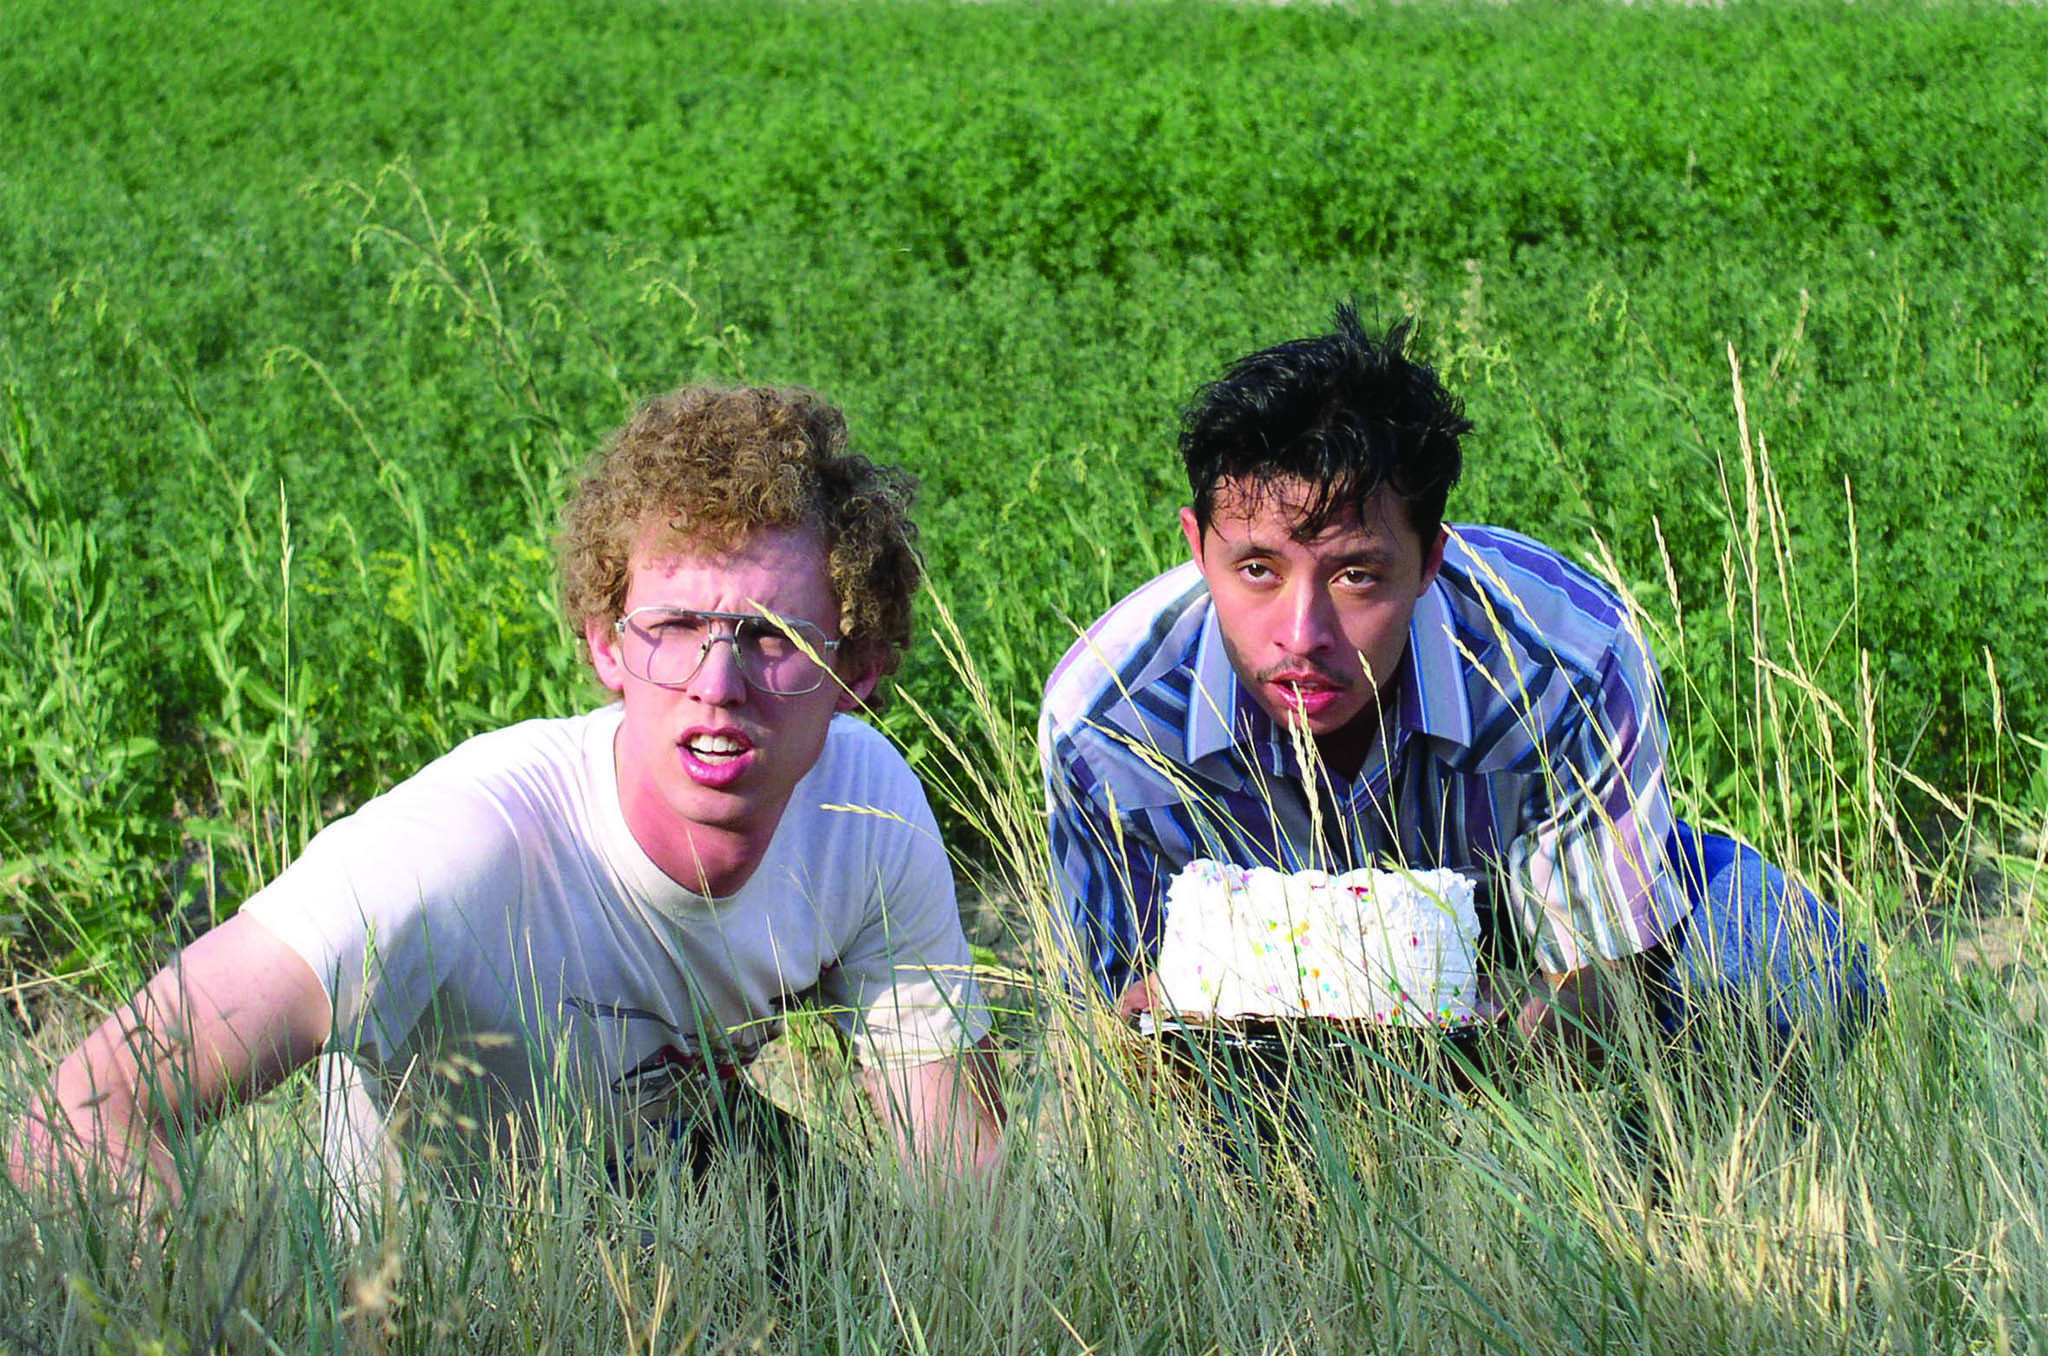 Best teen movies, Napoleon Dynamite